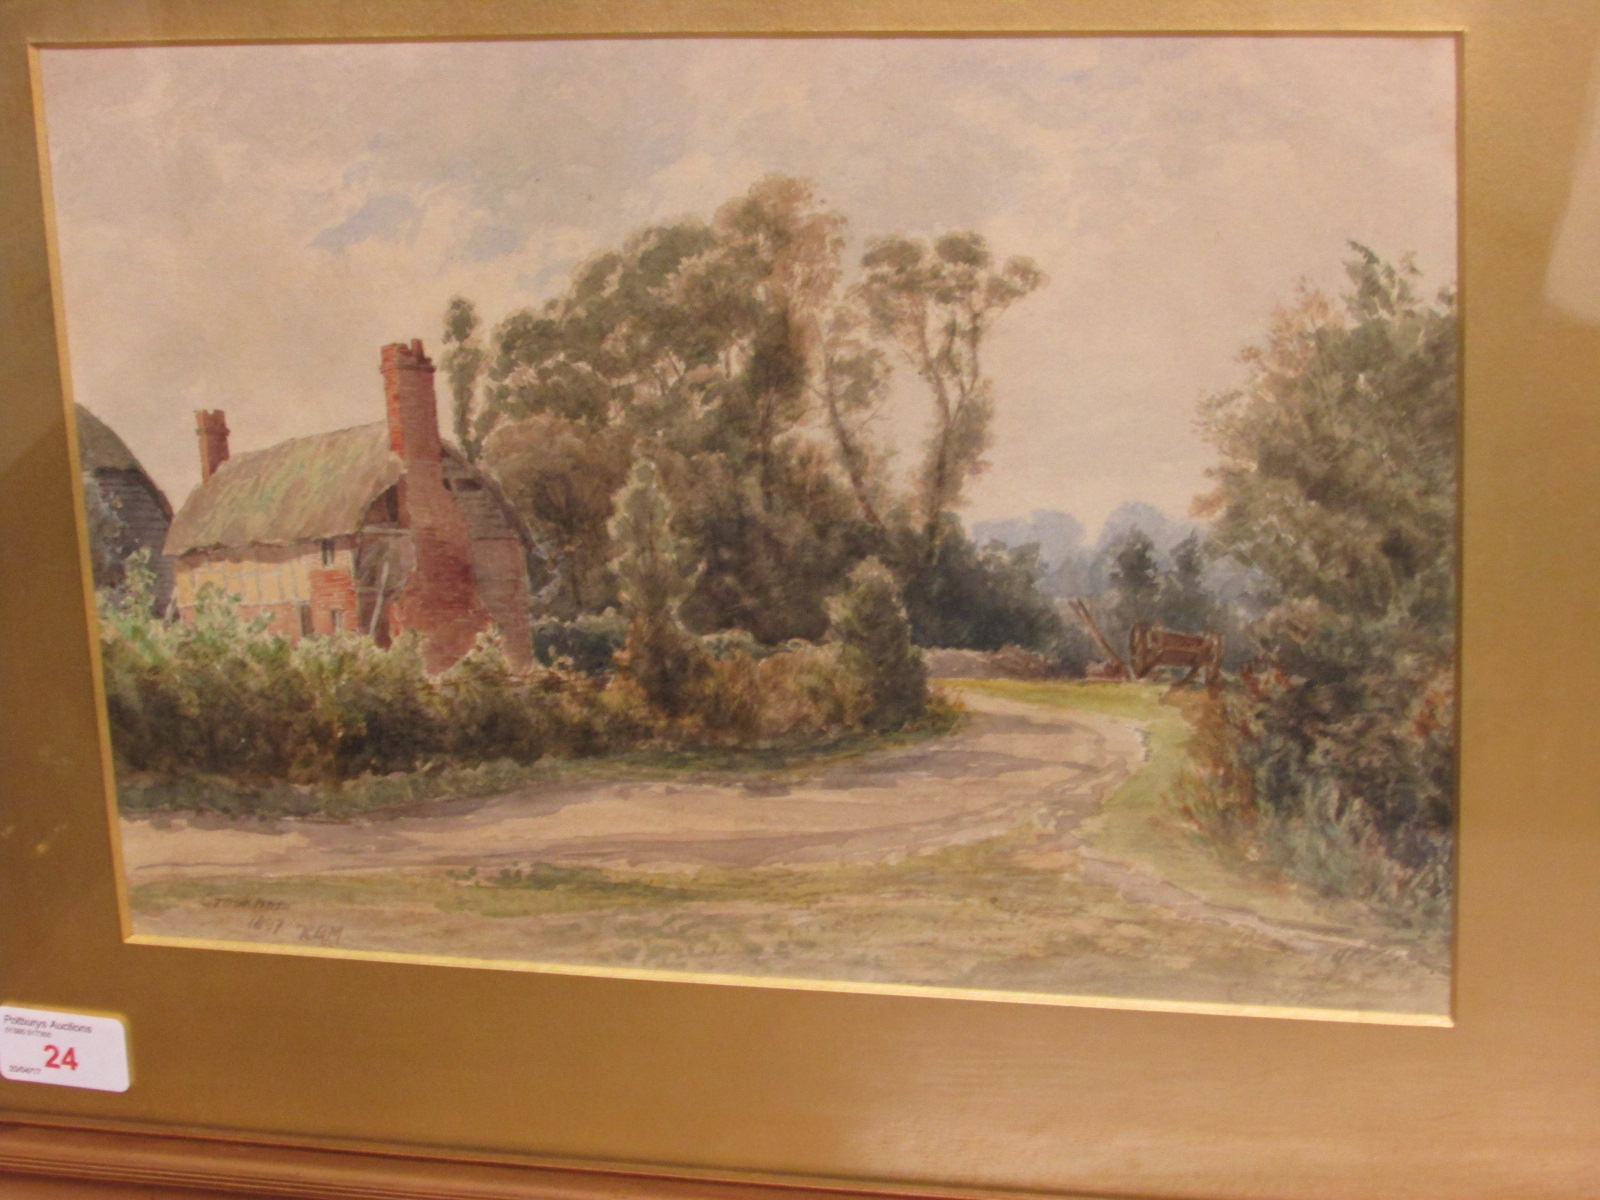 Lot 24 - Crookham, watercolour, titled lower left, initialled RBM and dated 1897, (23cm x 34cm), F&G